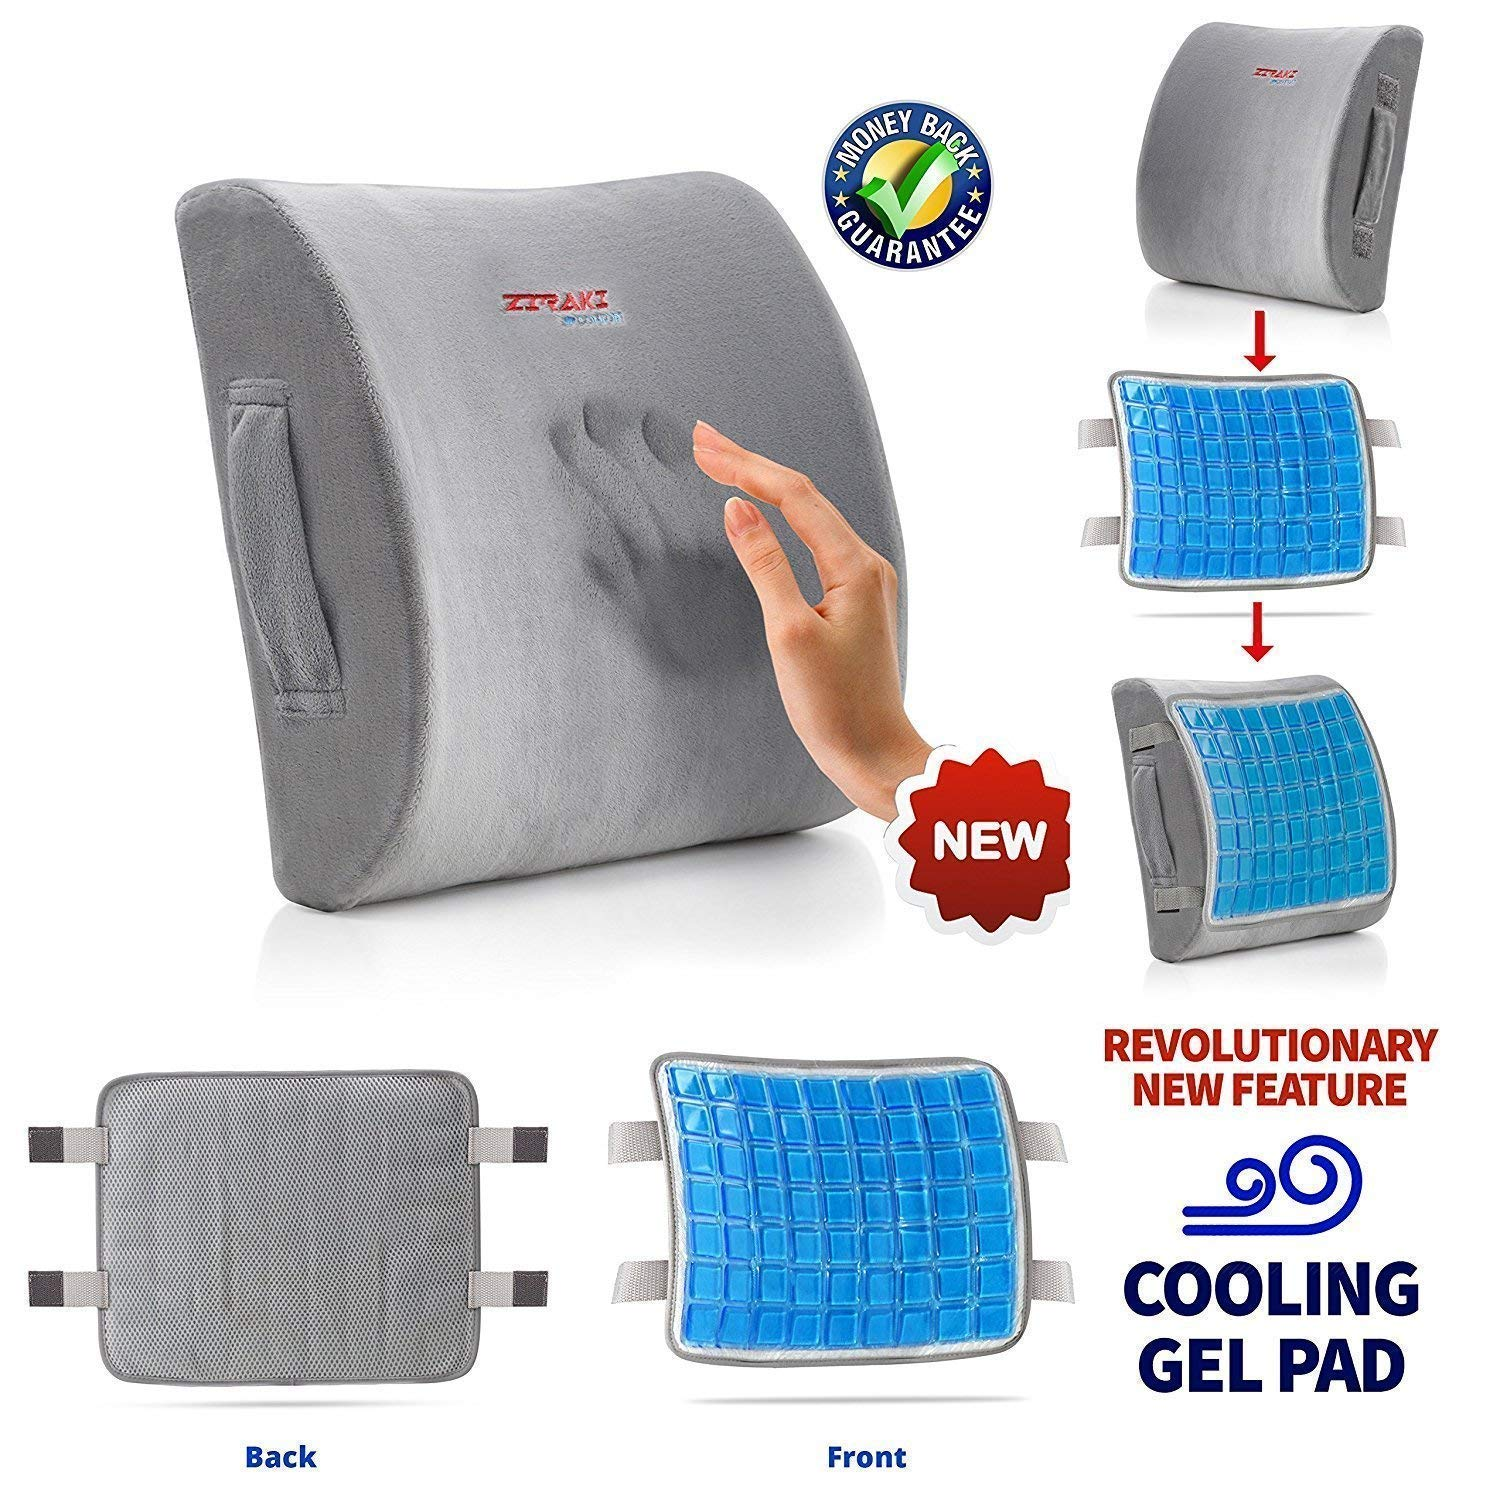 Lumbar Support Pillow Cushion, Memory Foam Soft & Firm to Protect & Soothe Lower Back, Pain Relief, Orthopedic, Velvet Washable Cover, Cool Gel, Adjustable Straps Ideal Gift Home Office Chair Car Seat